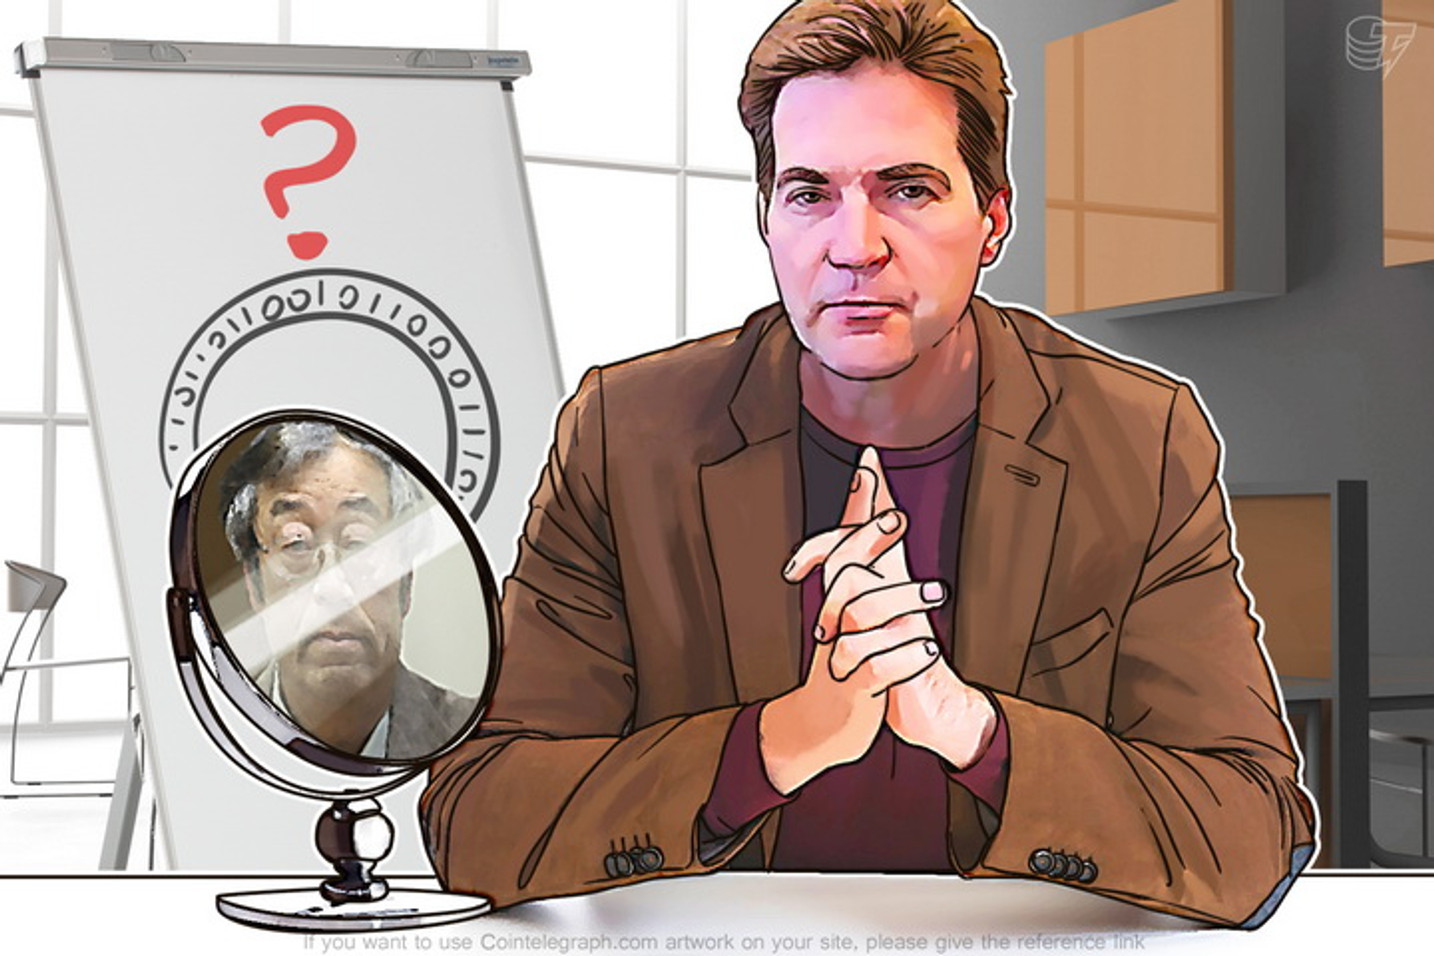 Craig Wright May Be Satoshi Nakamoto, But Is He The Inventor Of Bitcoin?